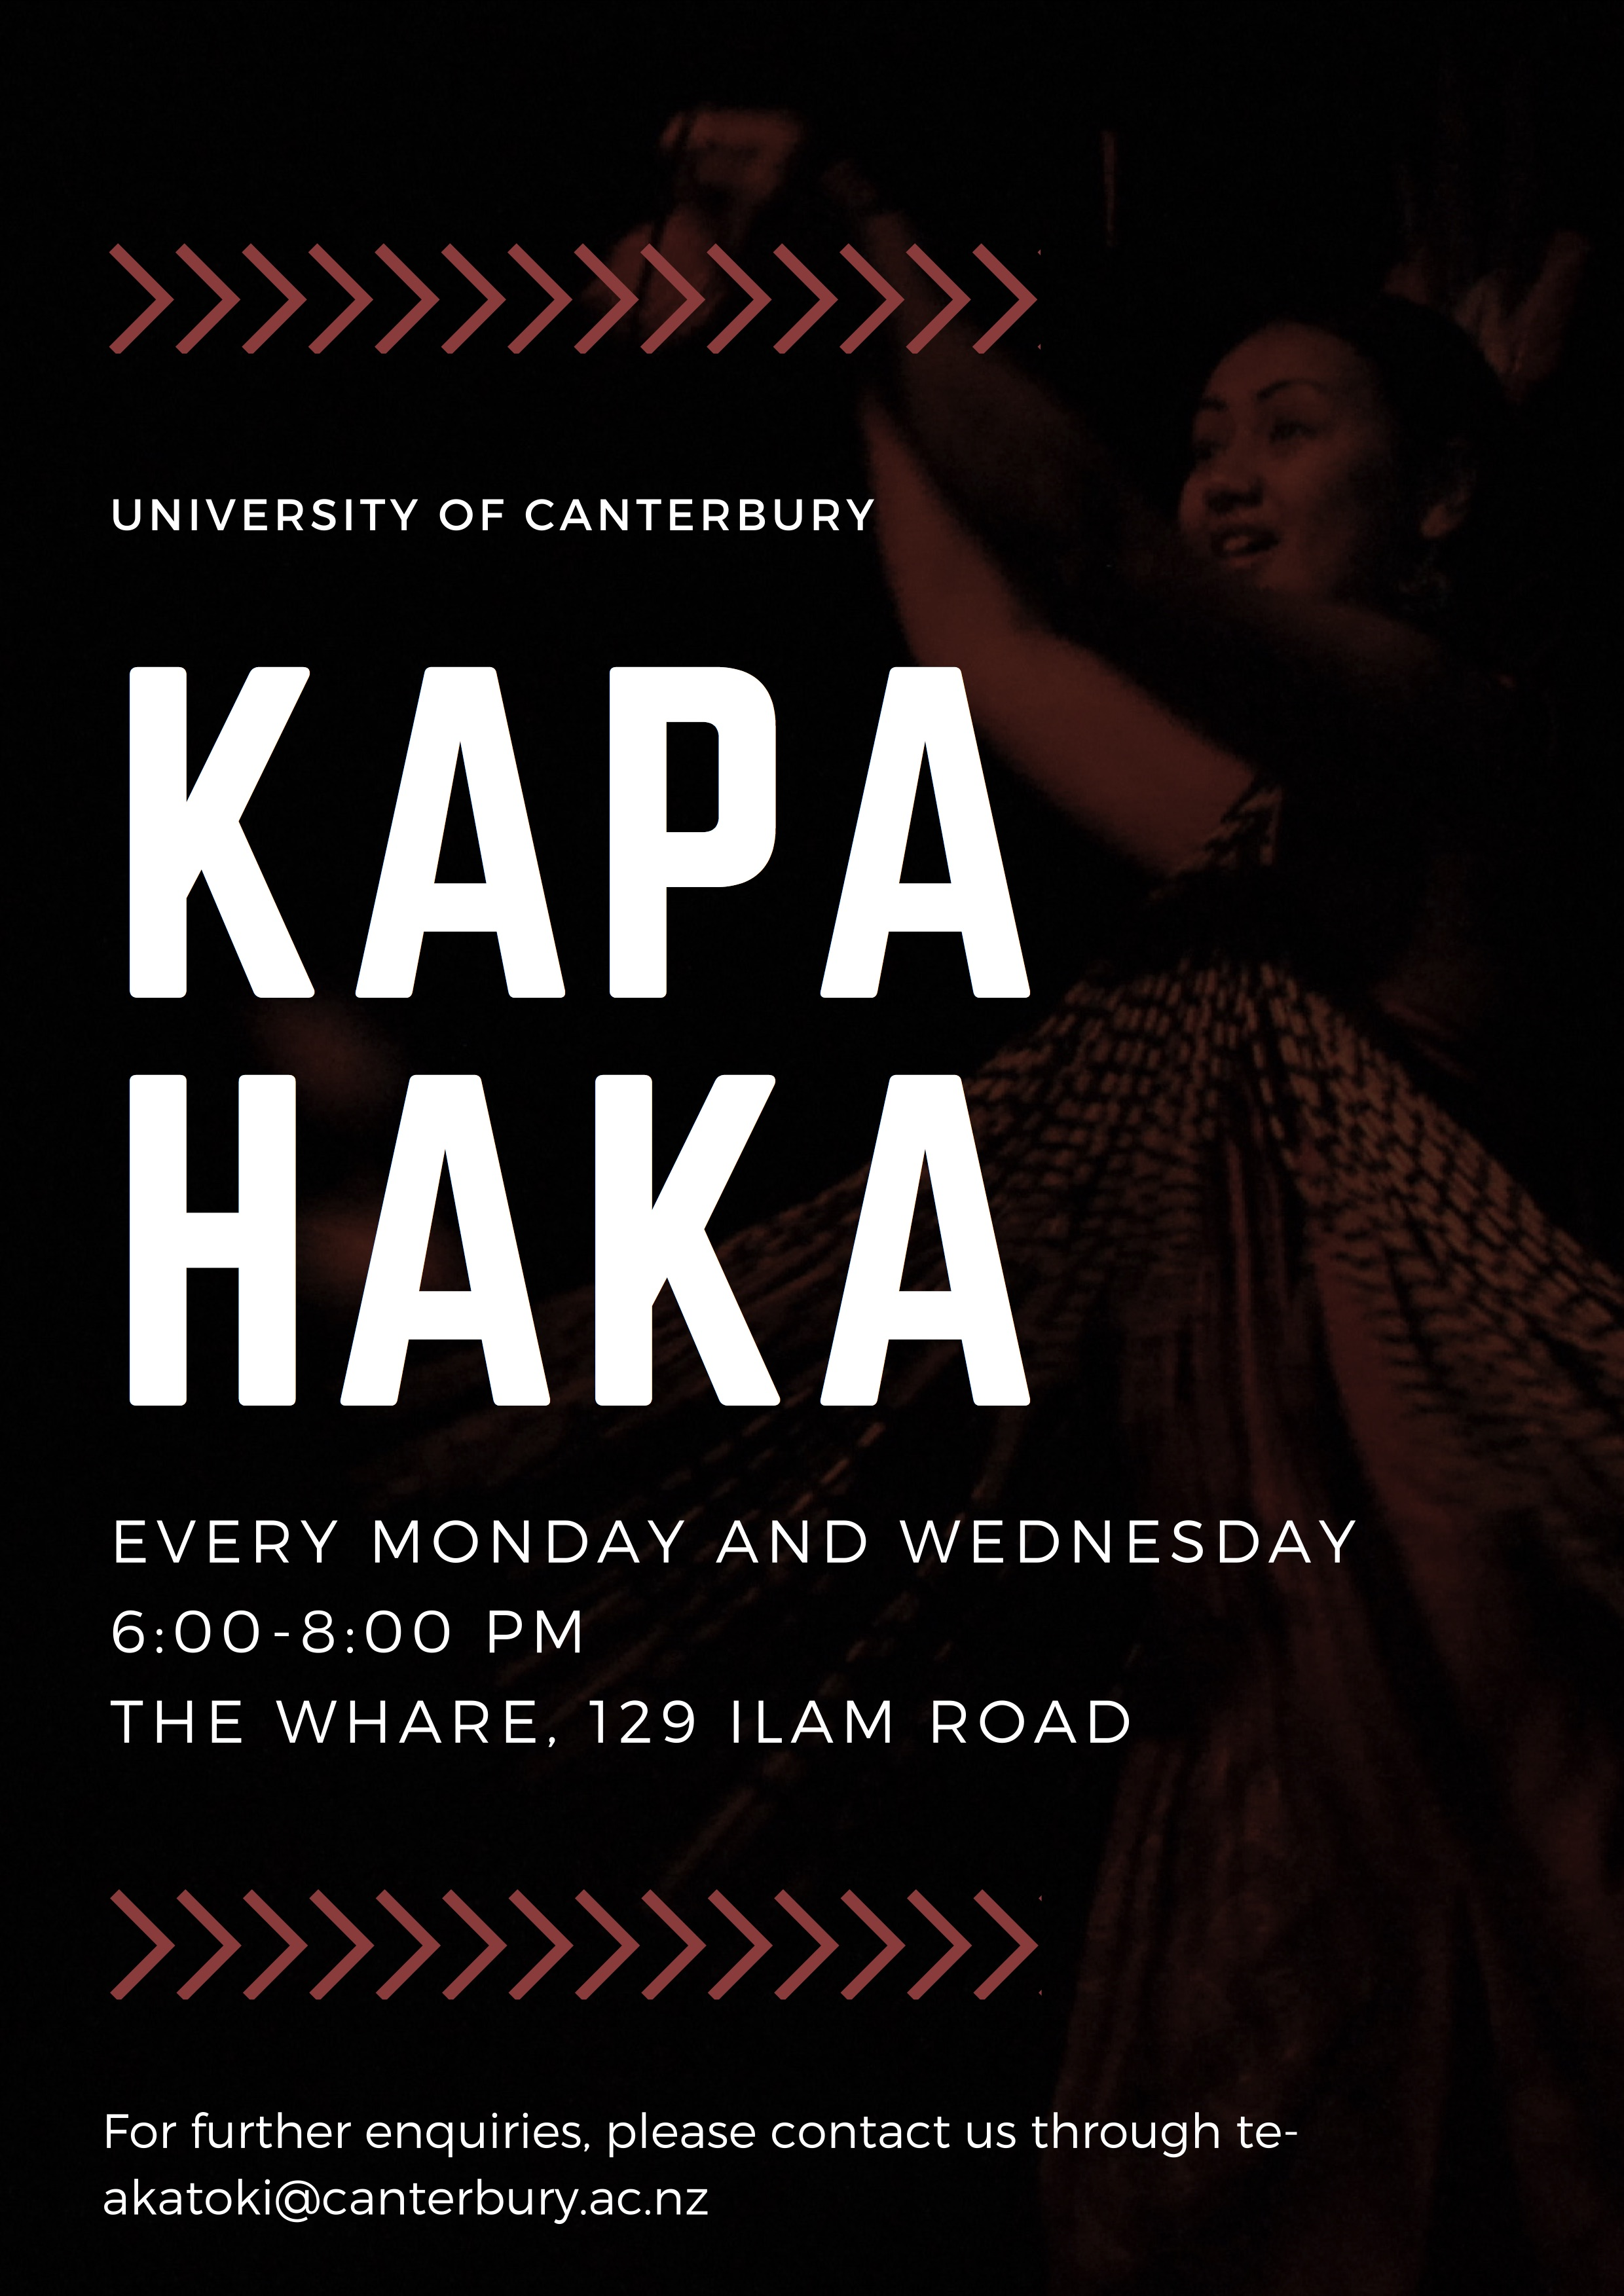 kapa-haka-revised copy.jpg